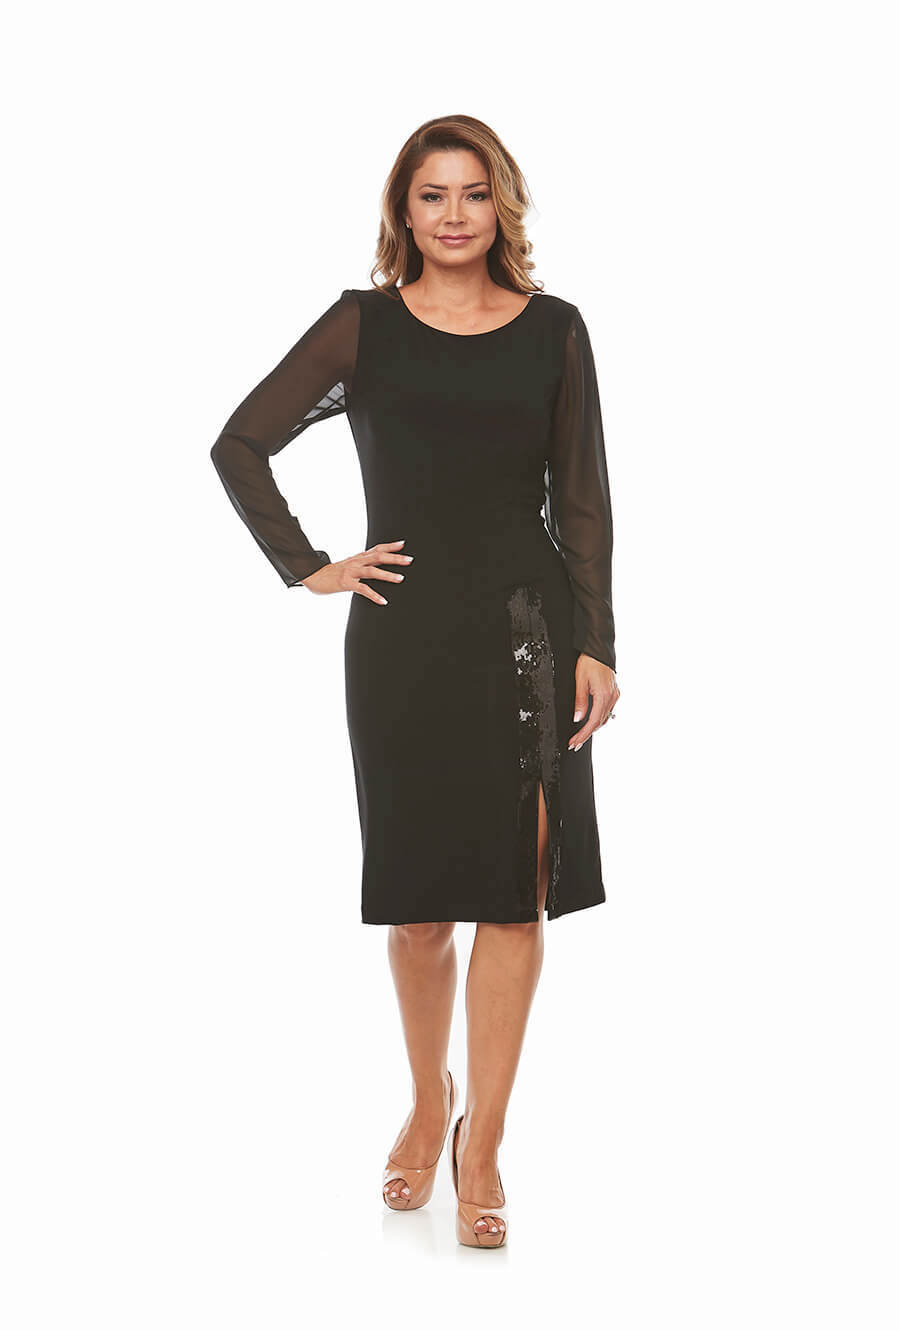 Black Cocktail Dress with long sleeve with sequinned trim and chiffon sleeves